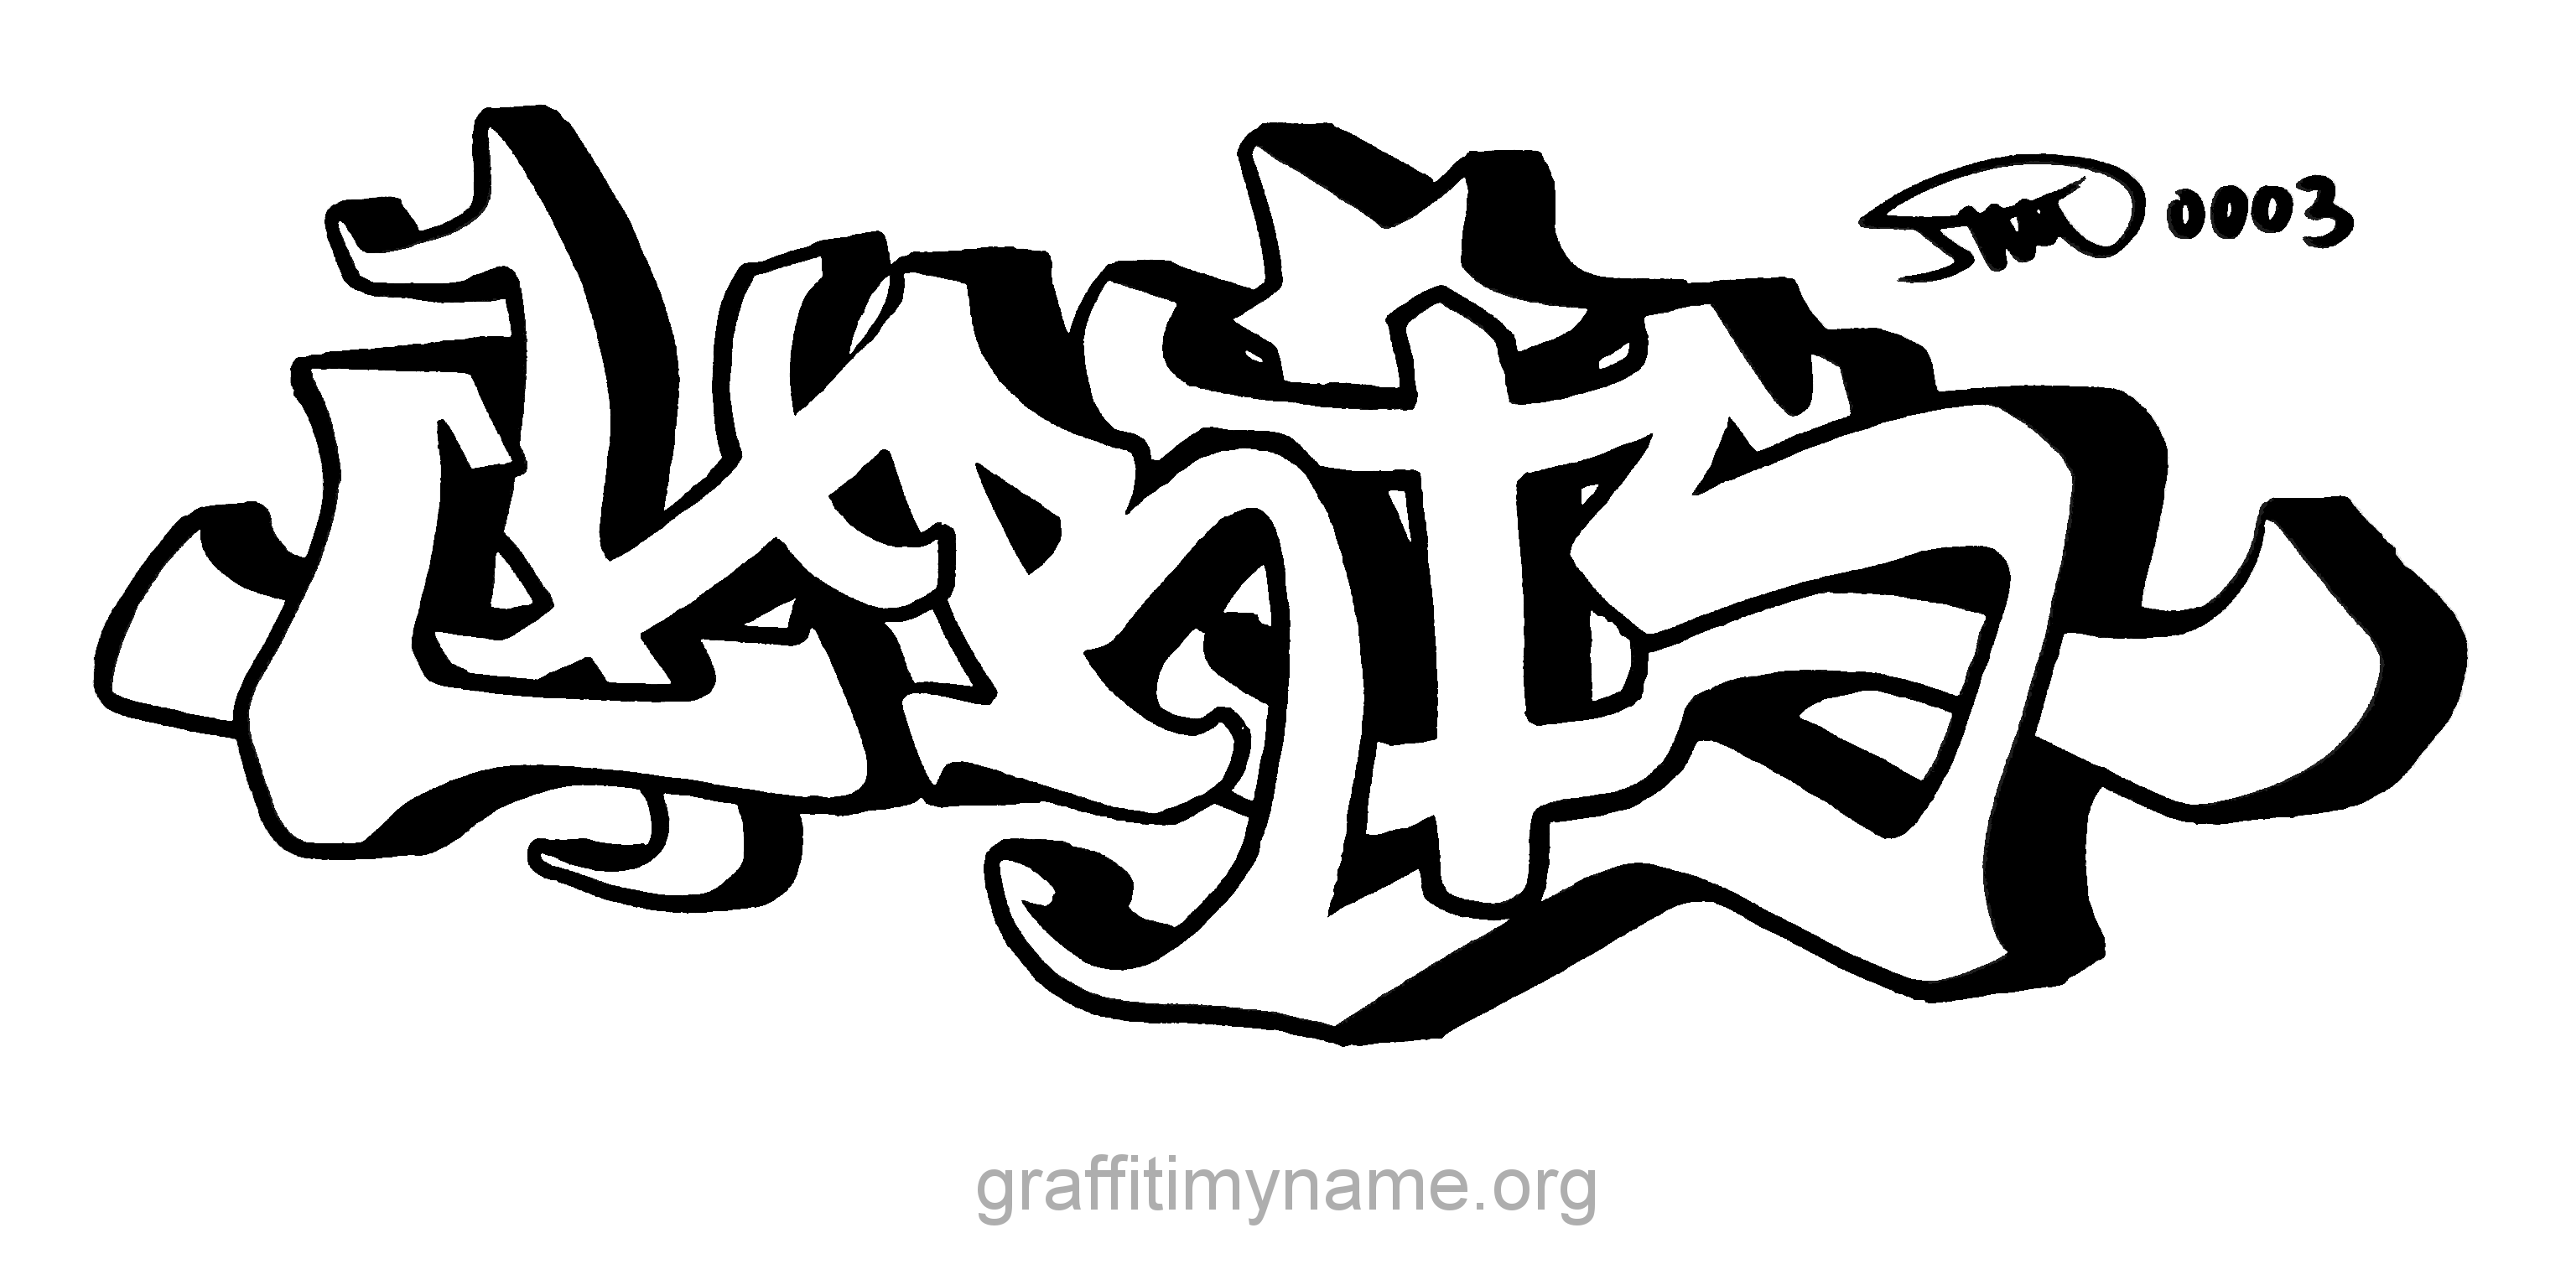 Chris In Graffiti